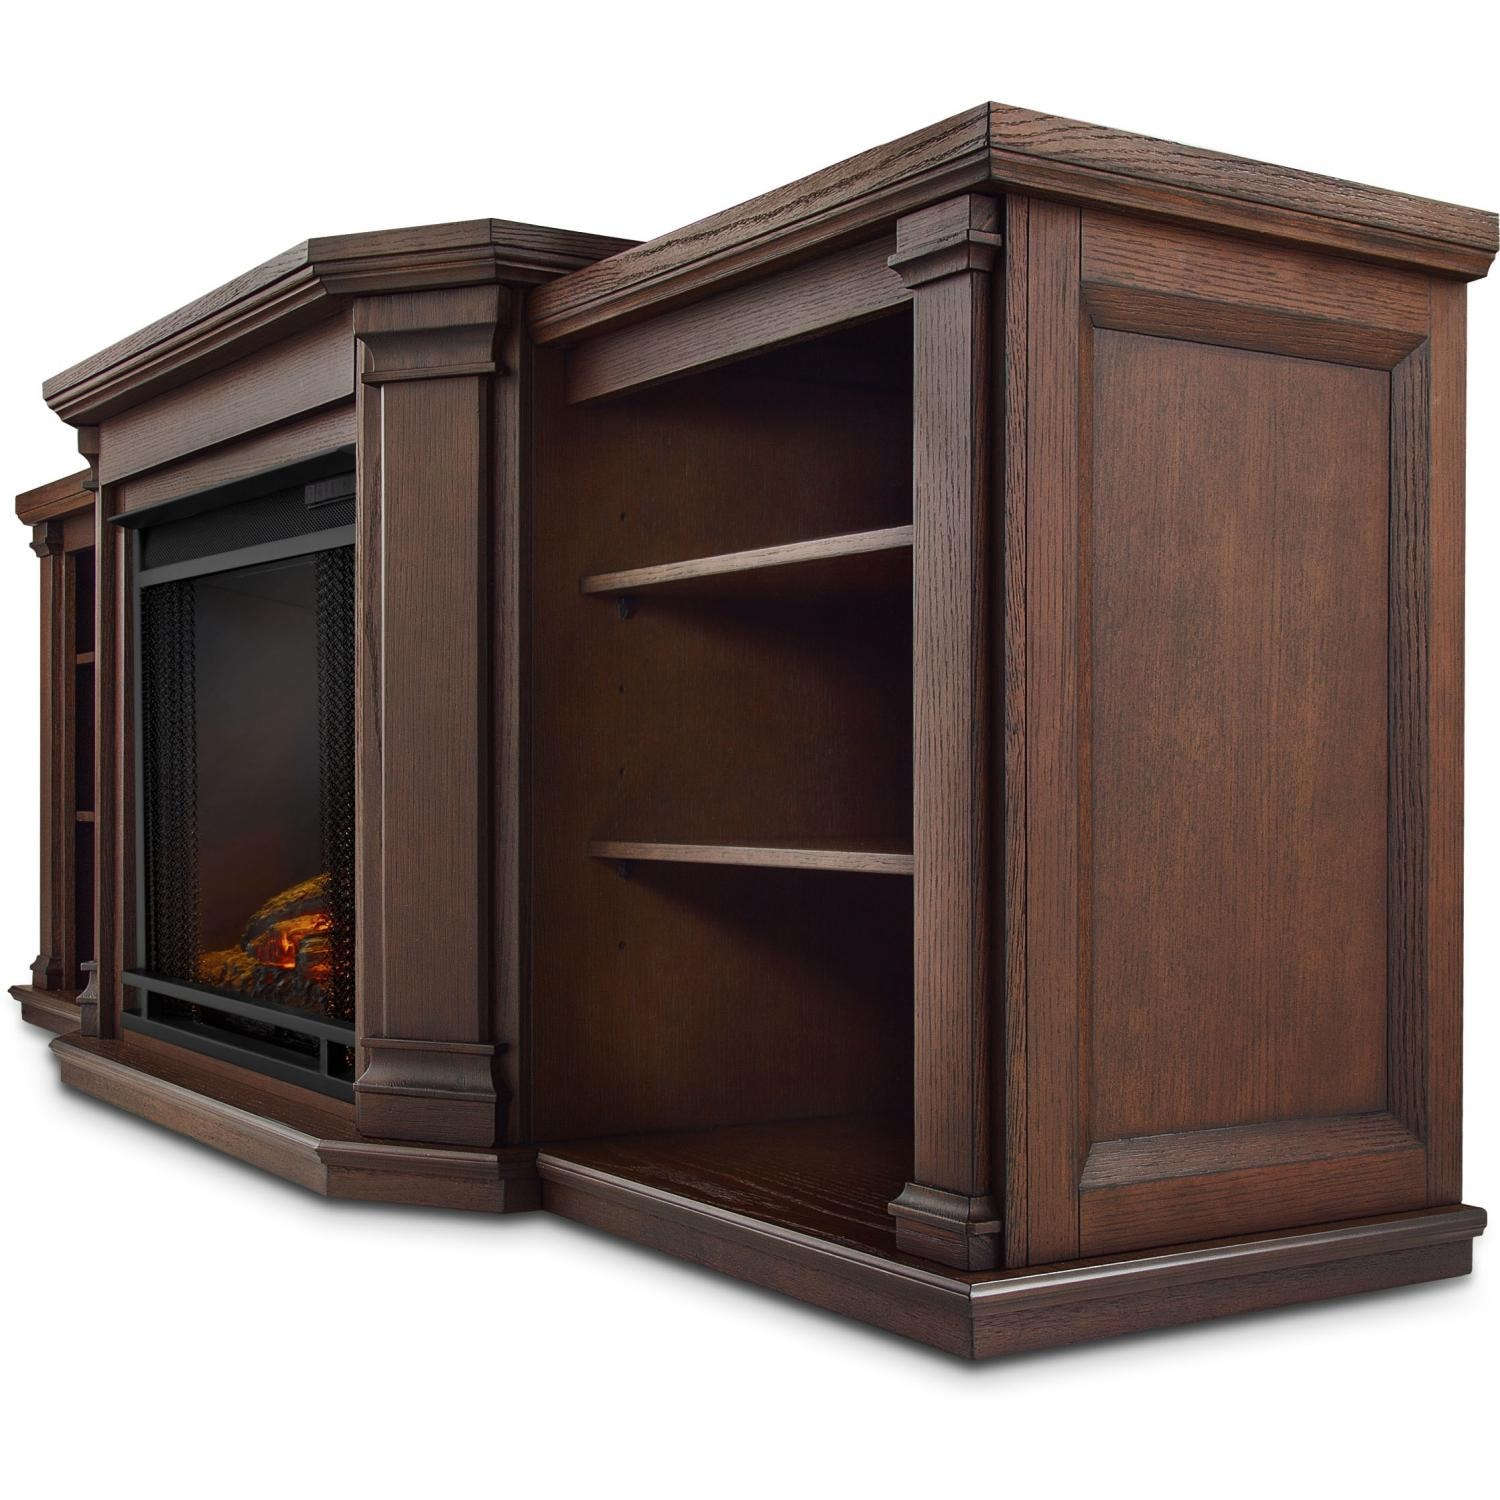 Real Flame Valmont 75 Inch Electric Fireplace Media Console Chestnut Oak Fireplace Country